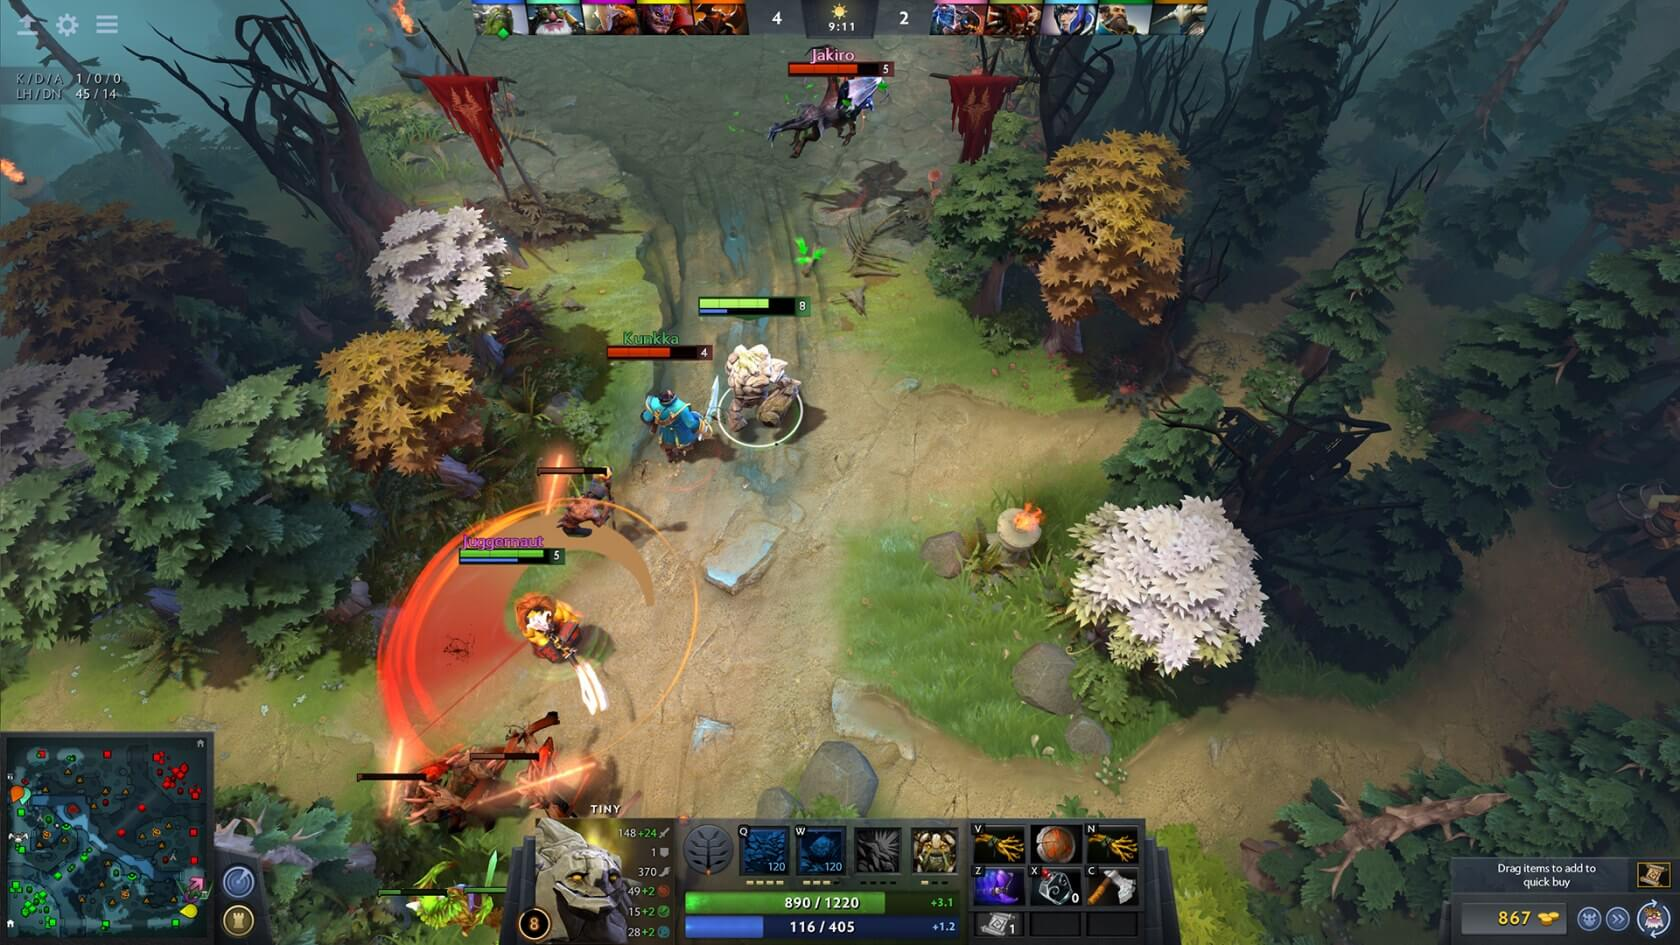 Valve is reportedly slapping misbehaving DOTA 2 players with 19-year bans